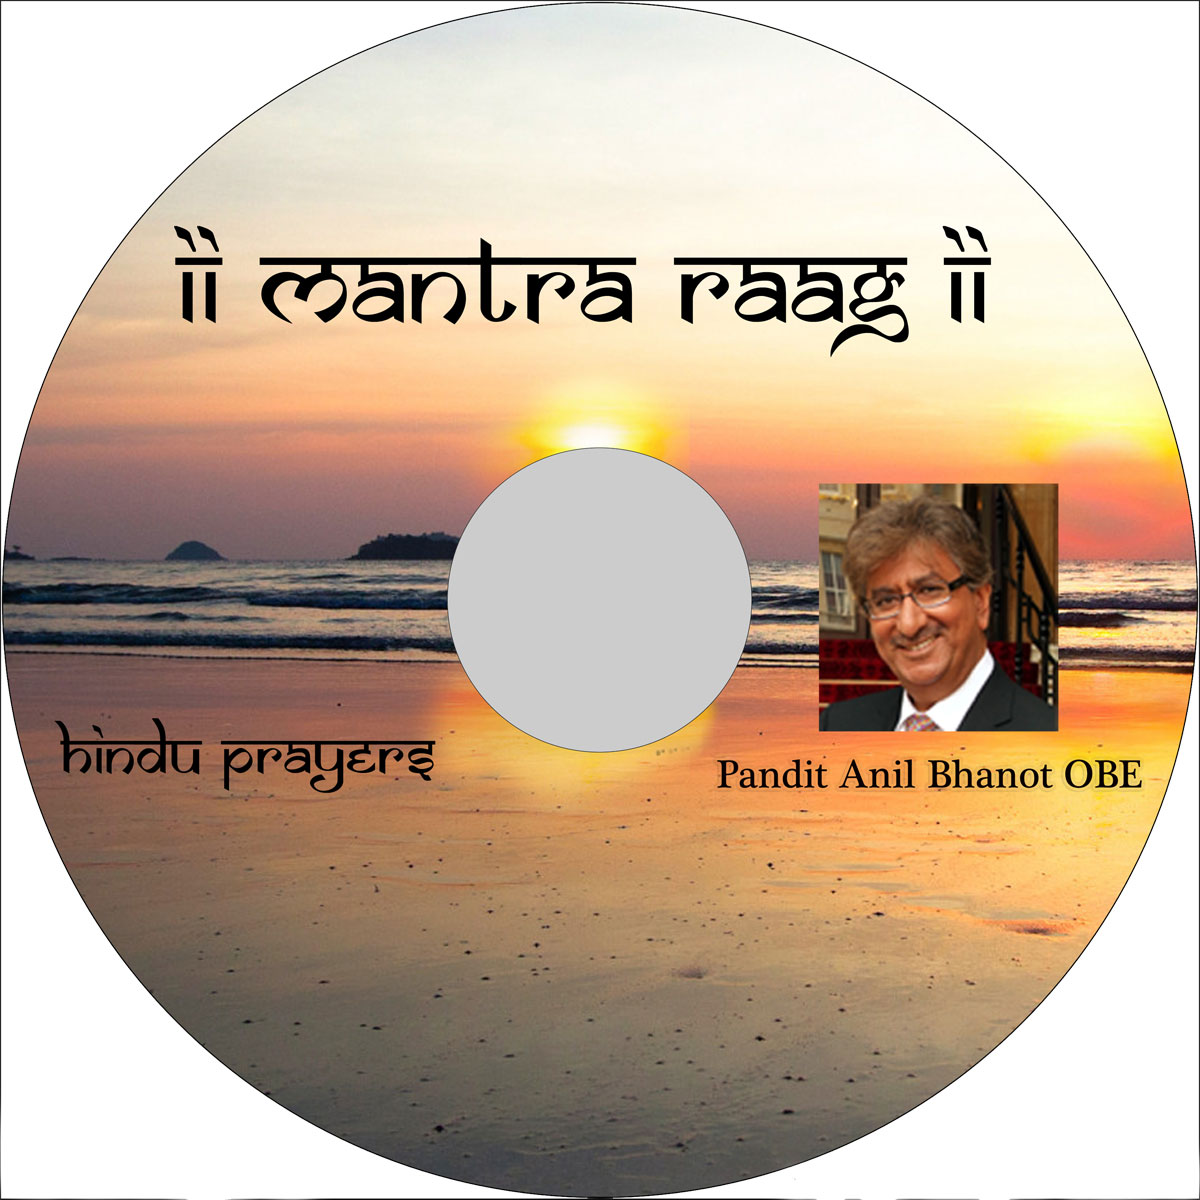 Mantra Raag Hindu Prayers